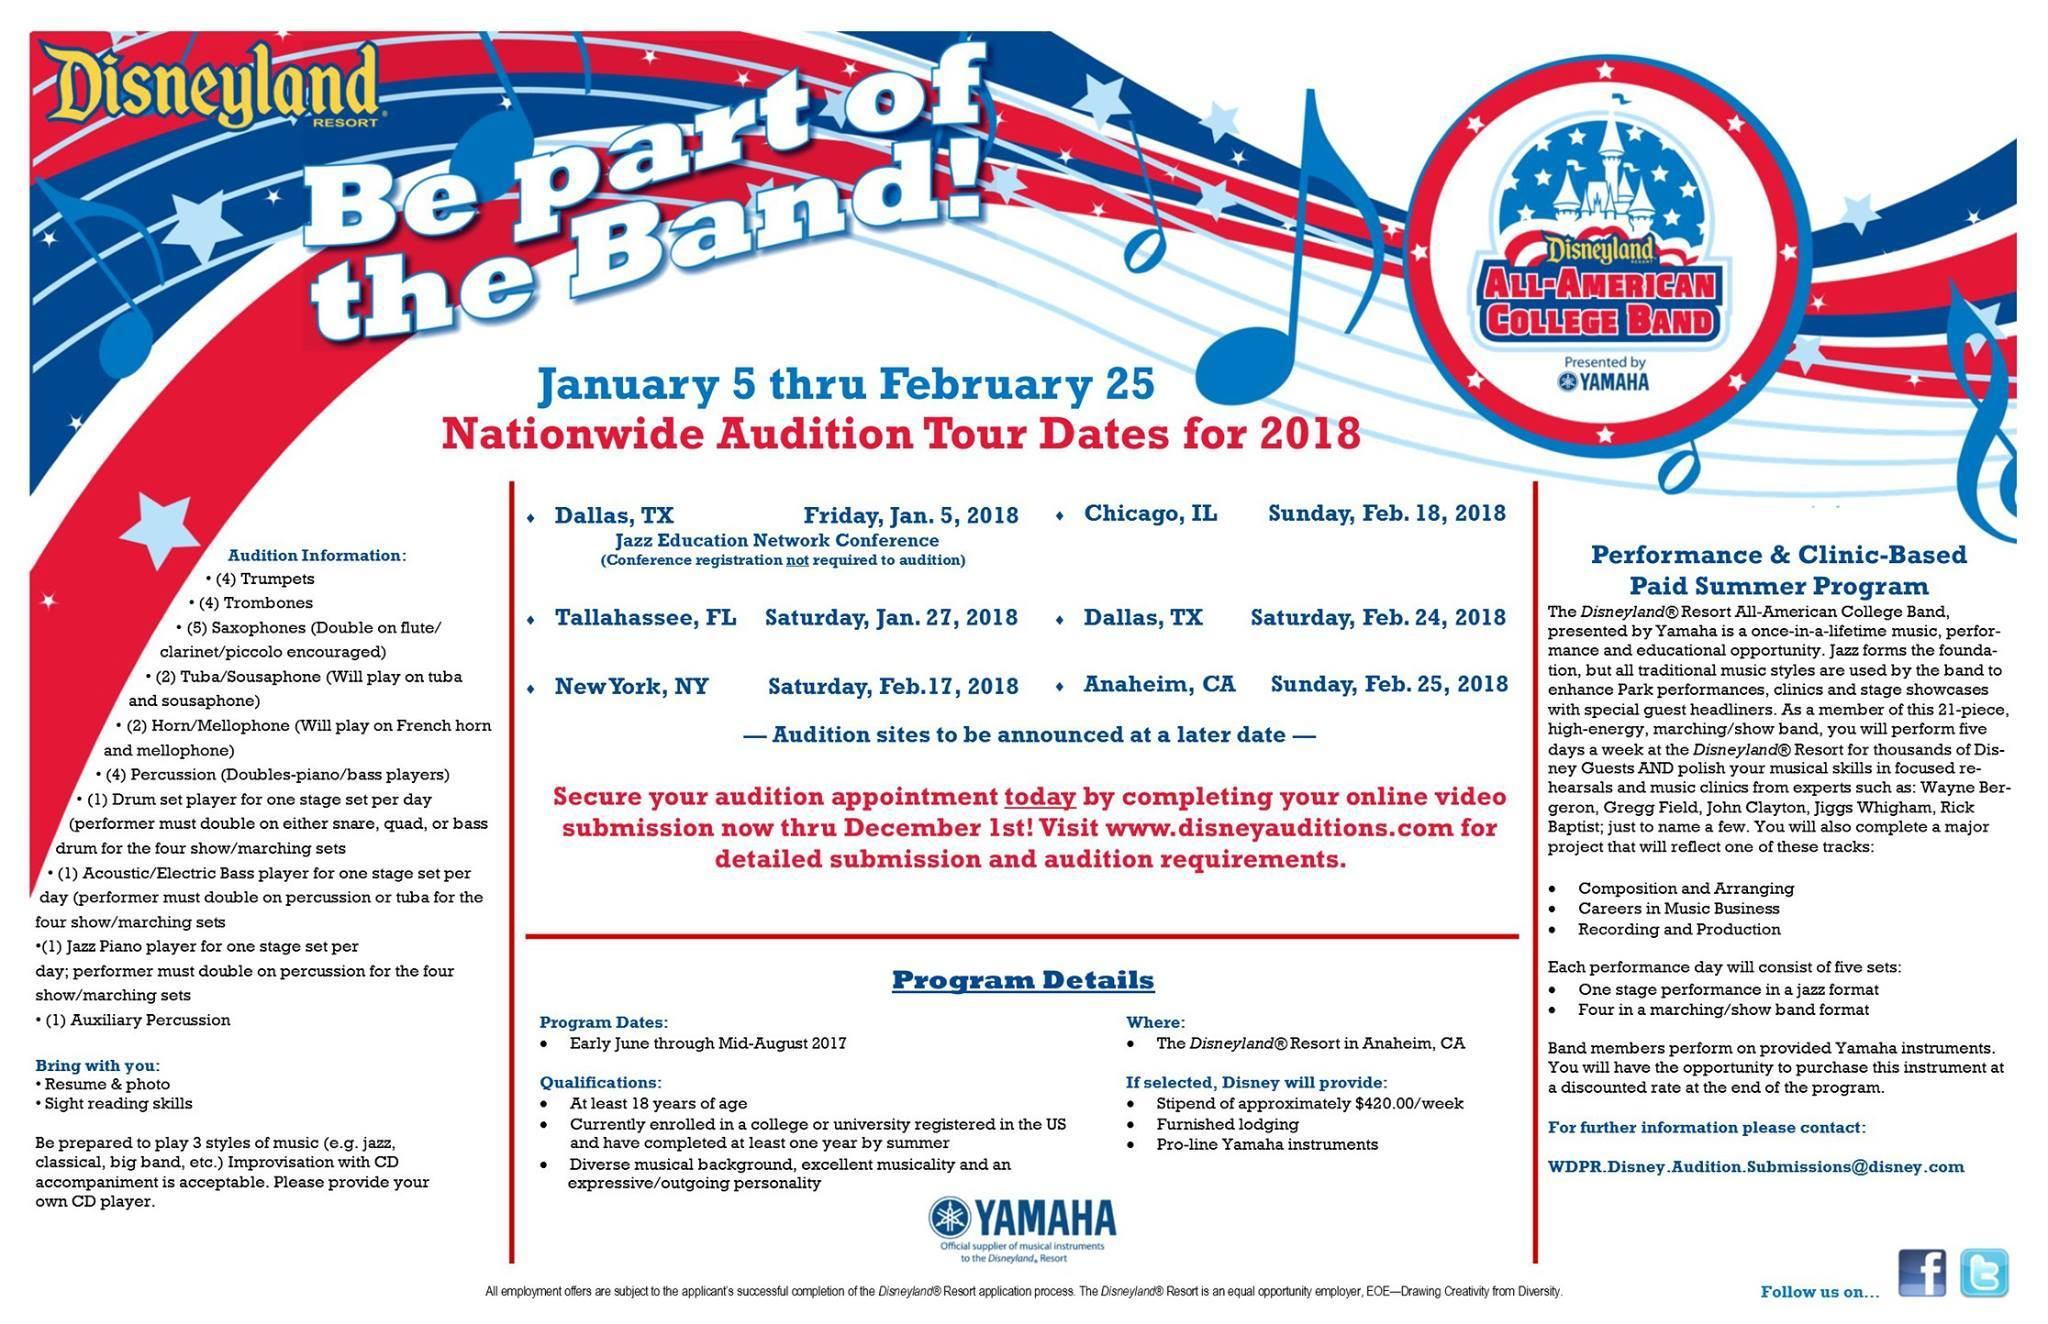 2018 Disneyland Resort All-American College Band Auditions